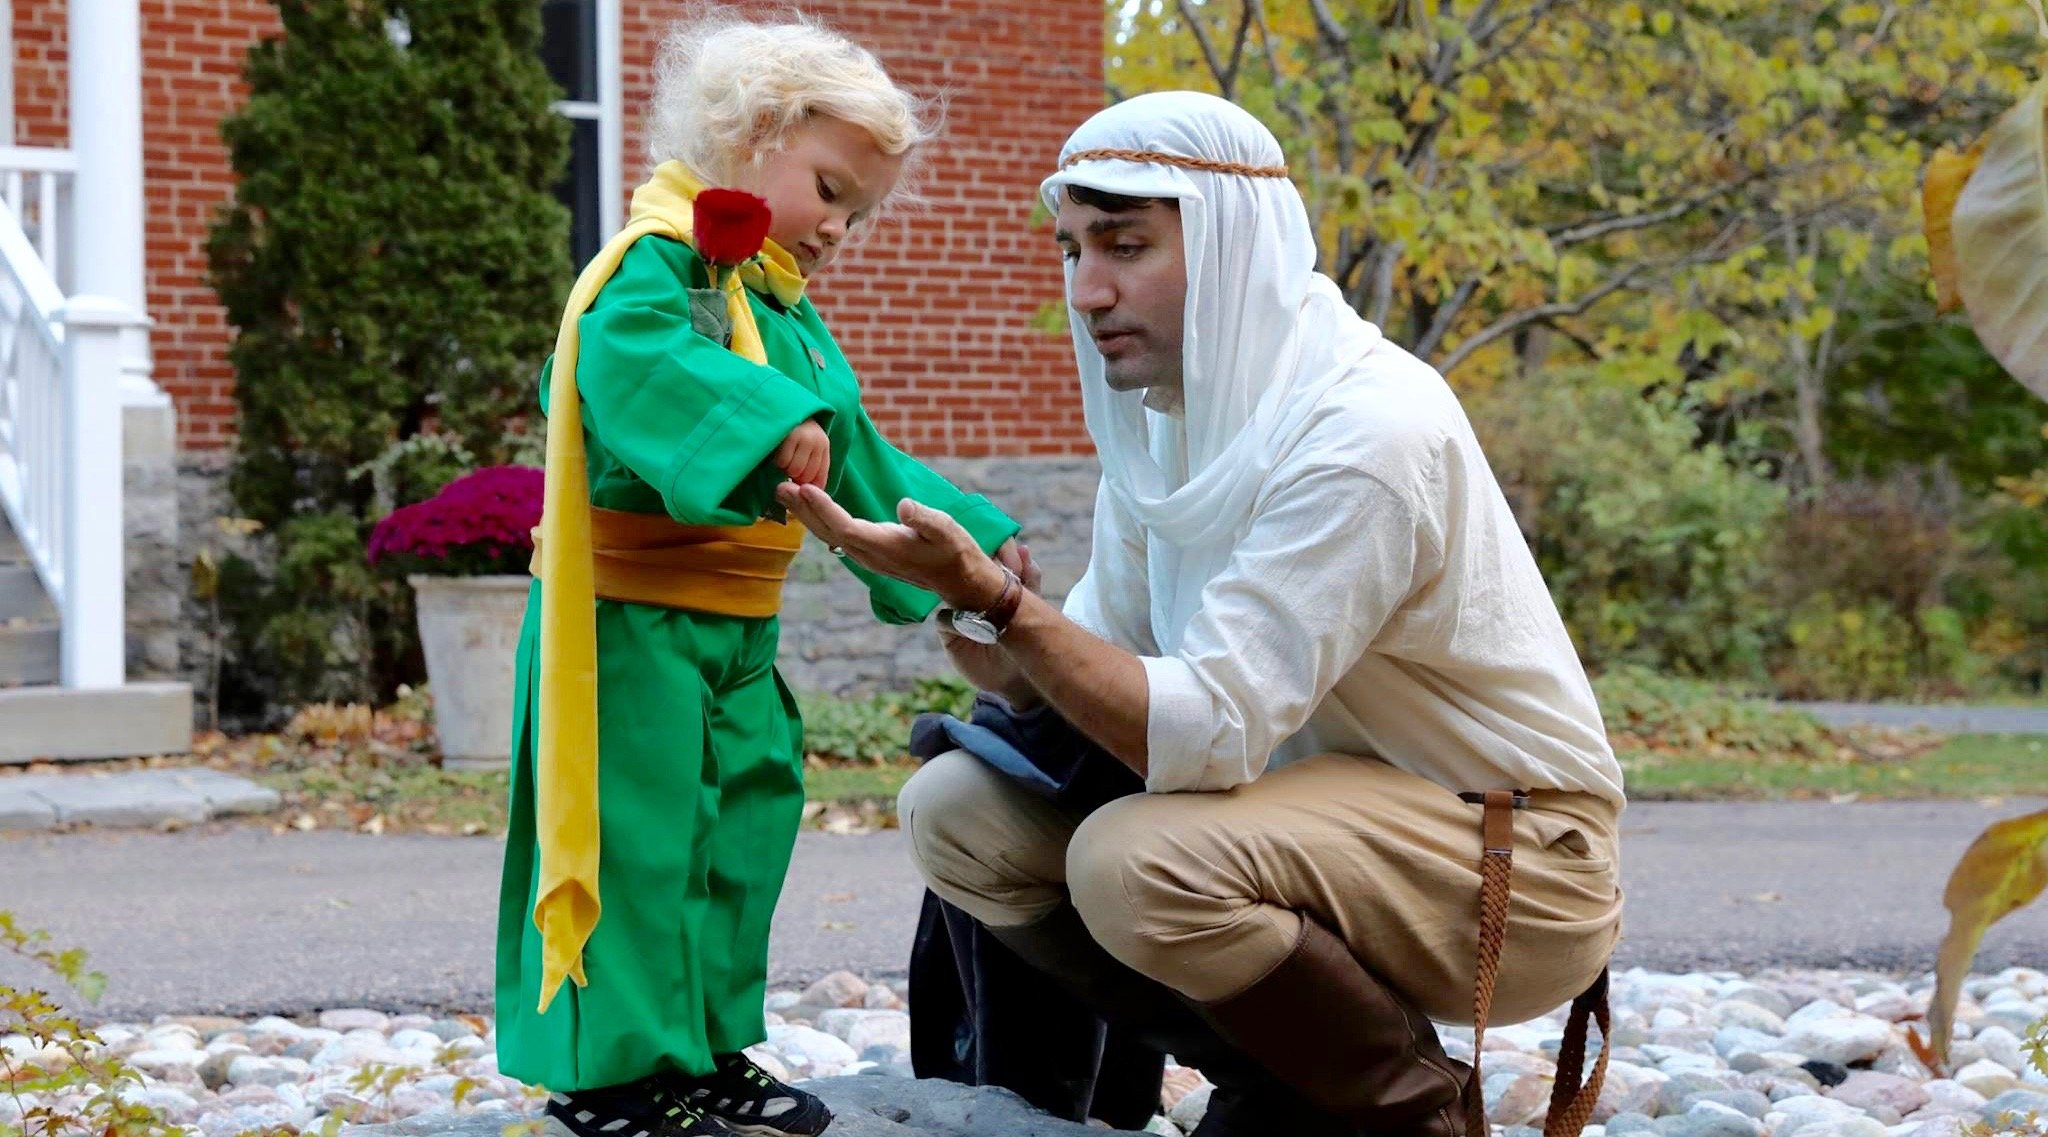 Justin Trudeau dresses up and goes trick-or-treating with his family for Halloween (PHOTOS)